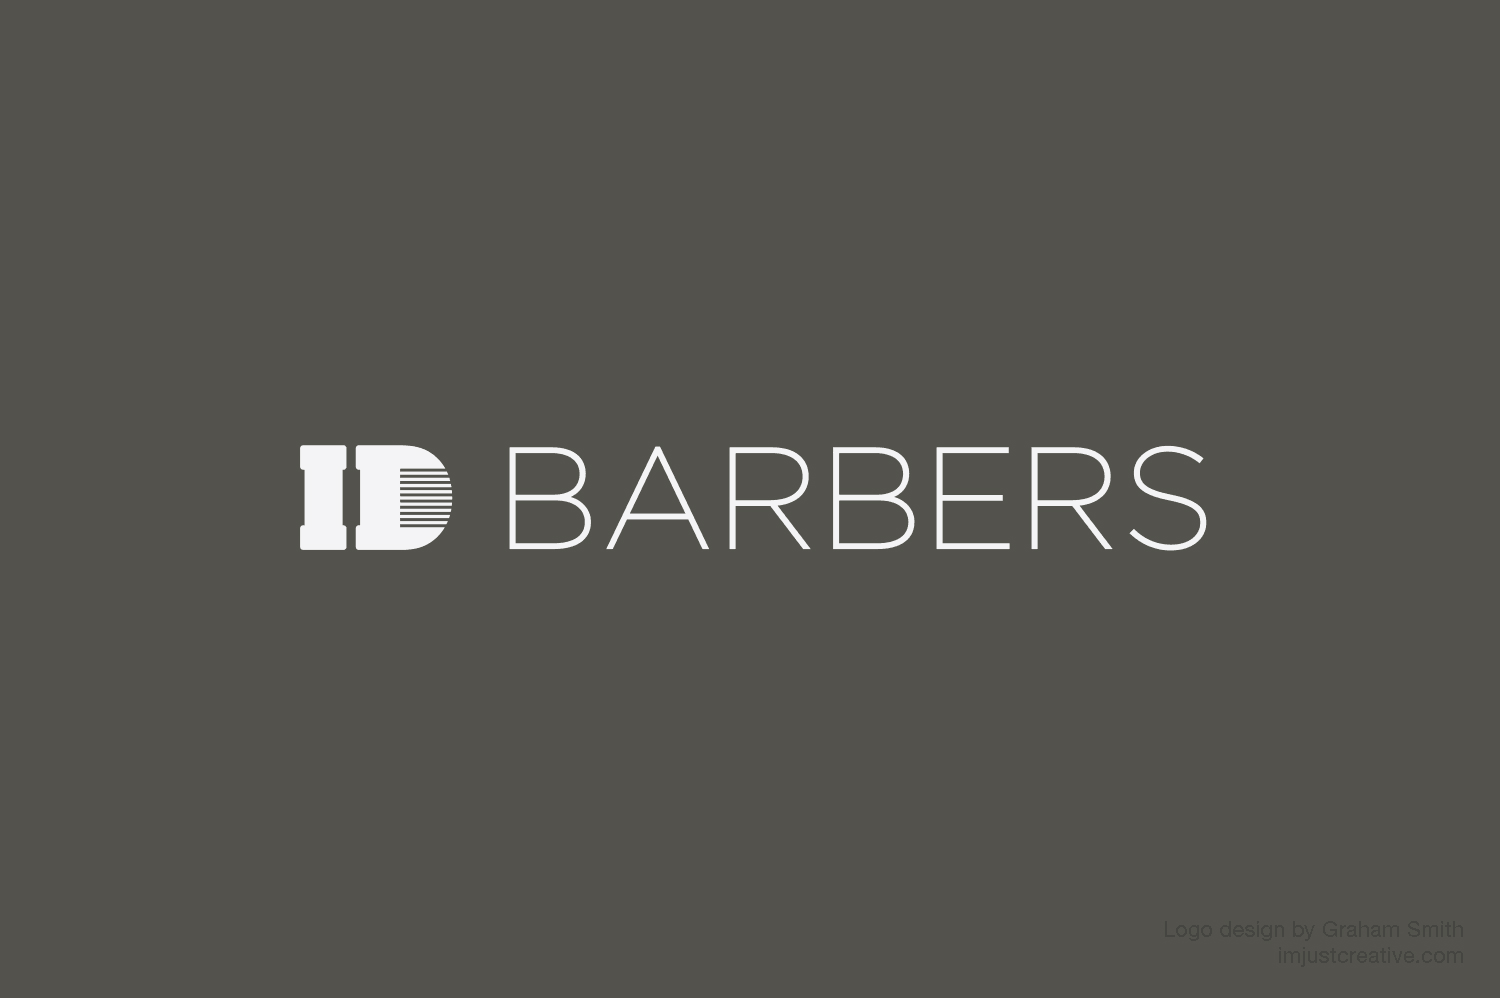 ID Barbers & Hairdressers Logo & Brand Identity Designed by Freelance Logo Designer The Logo Smith.